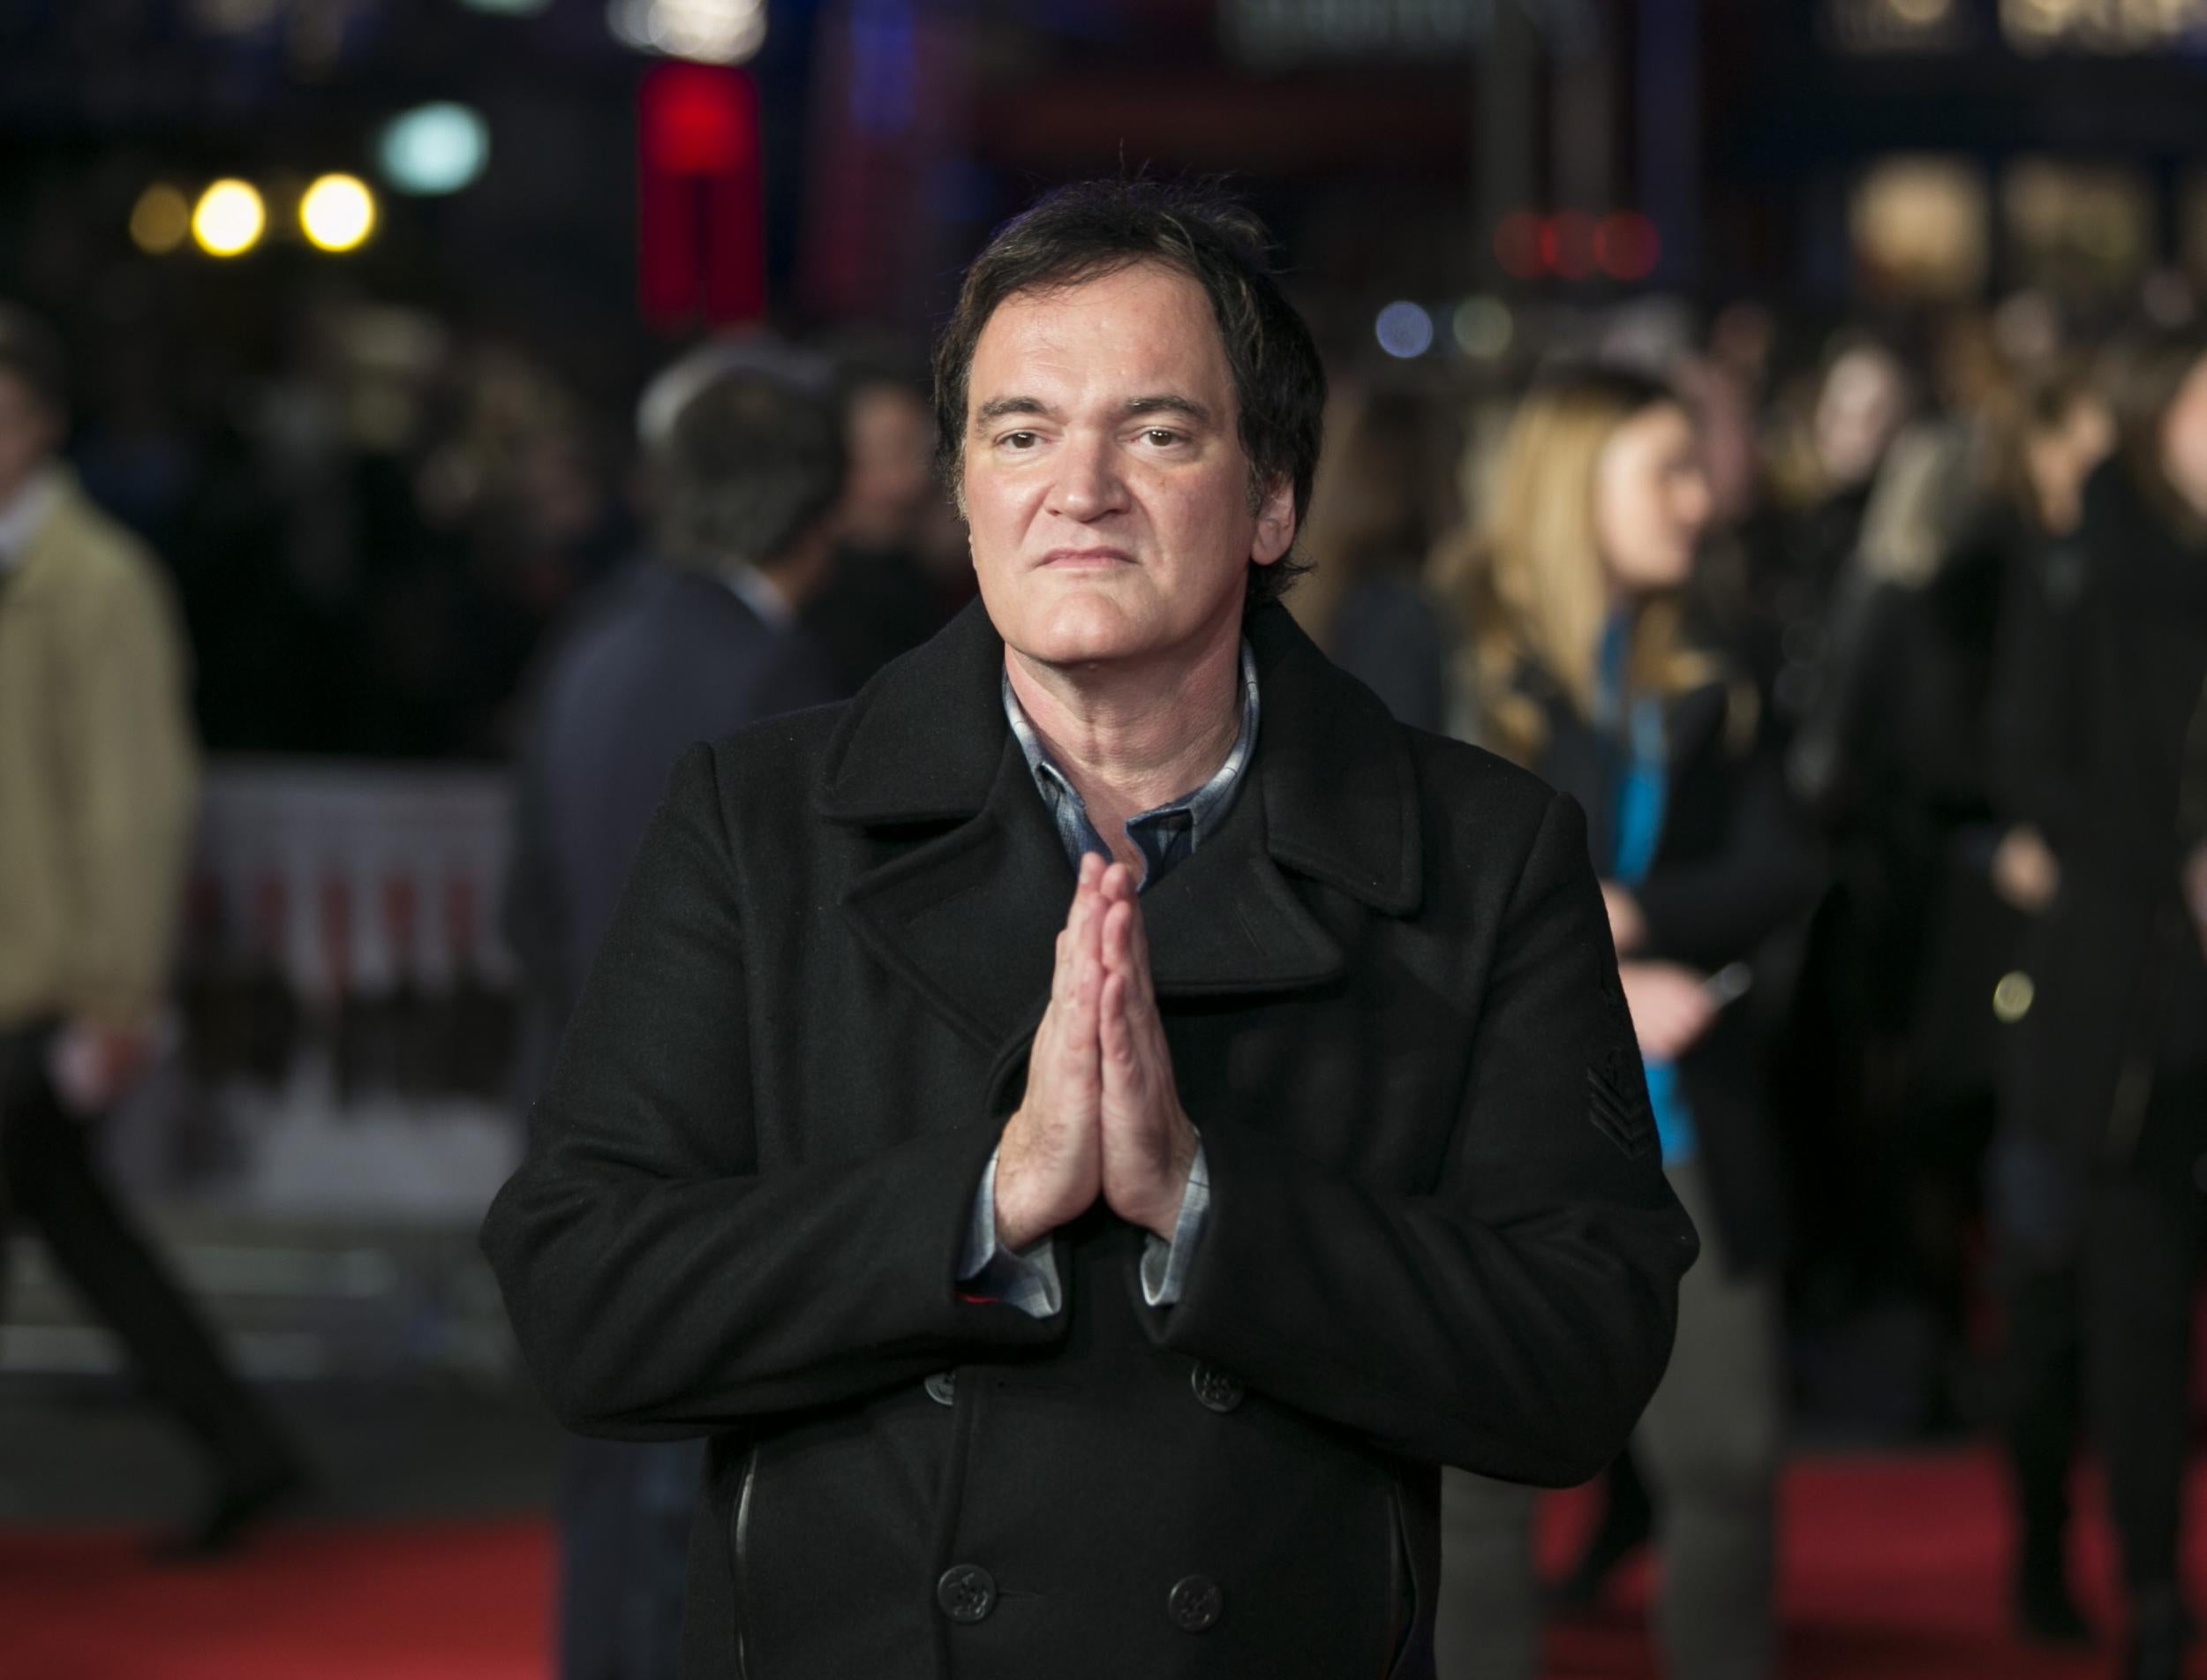 Quentin Tarantino wants to write novels and plays after his